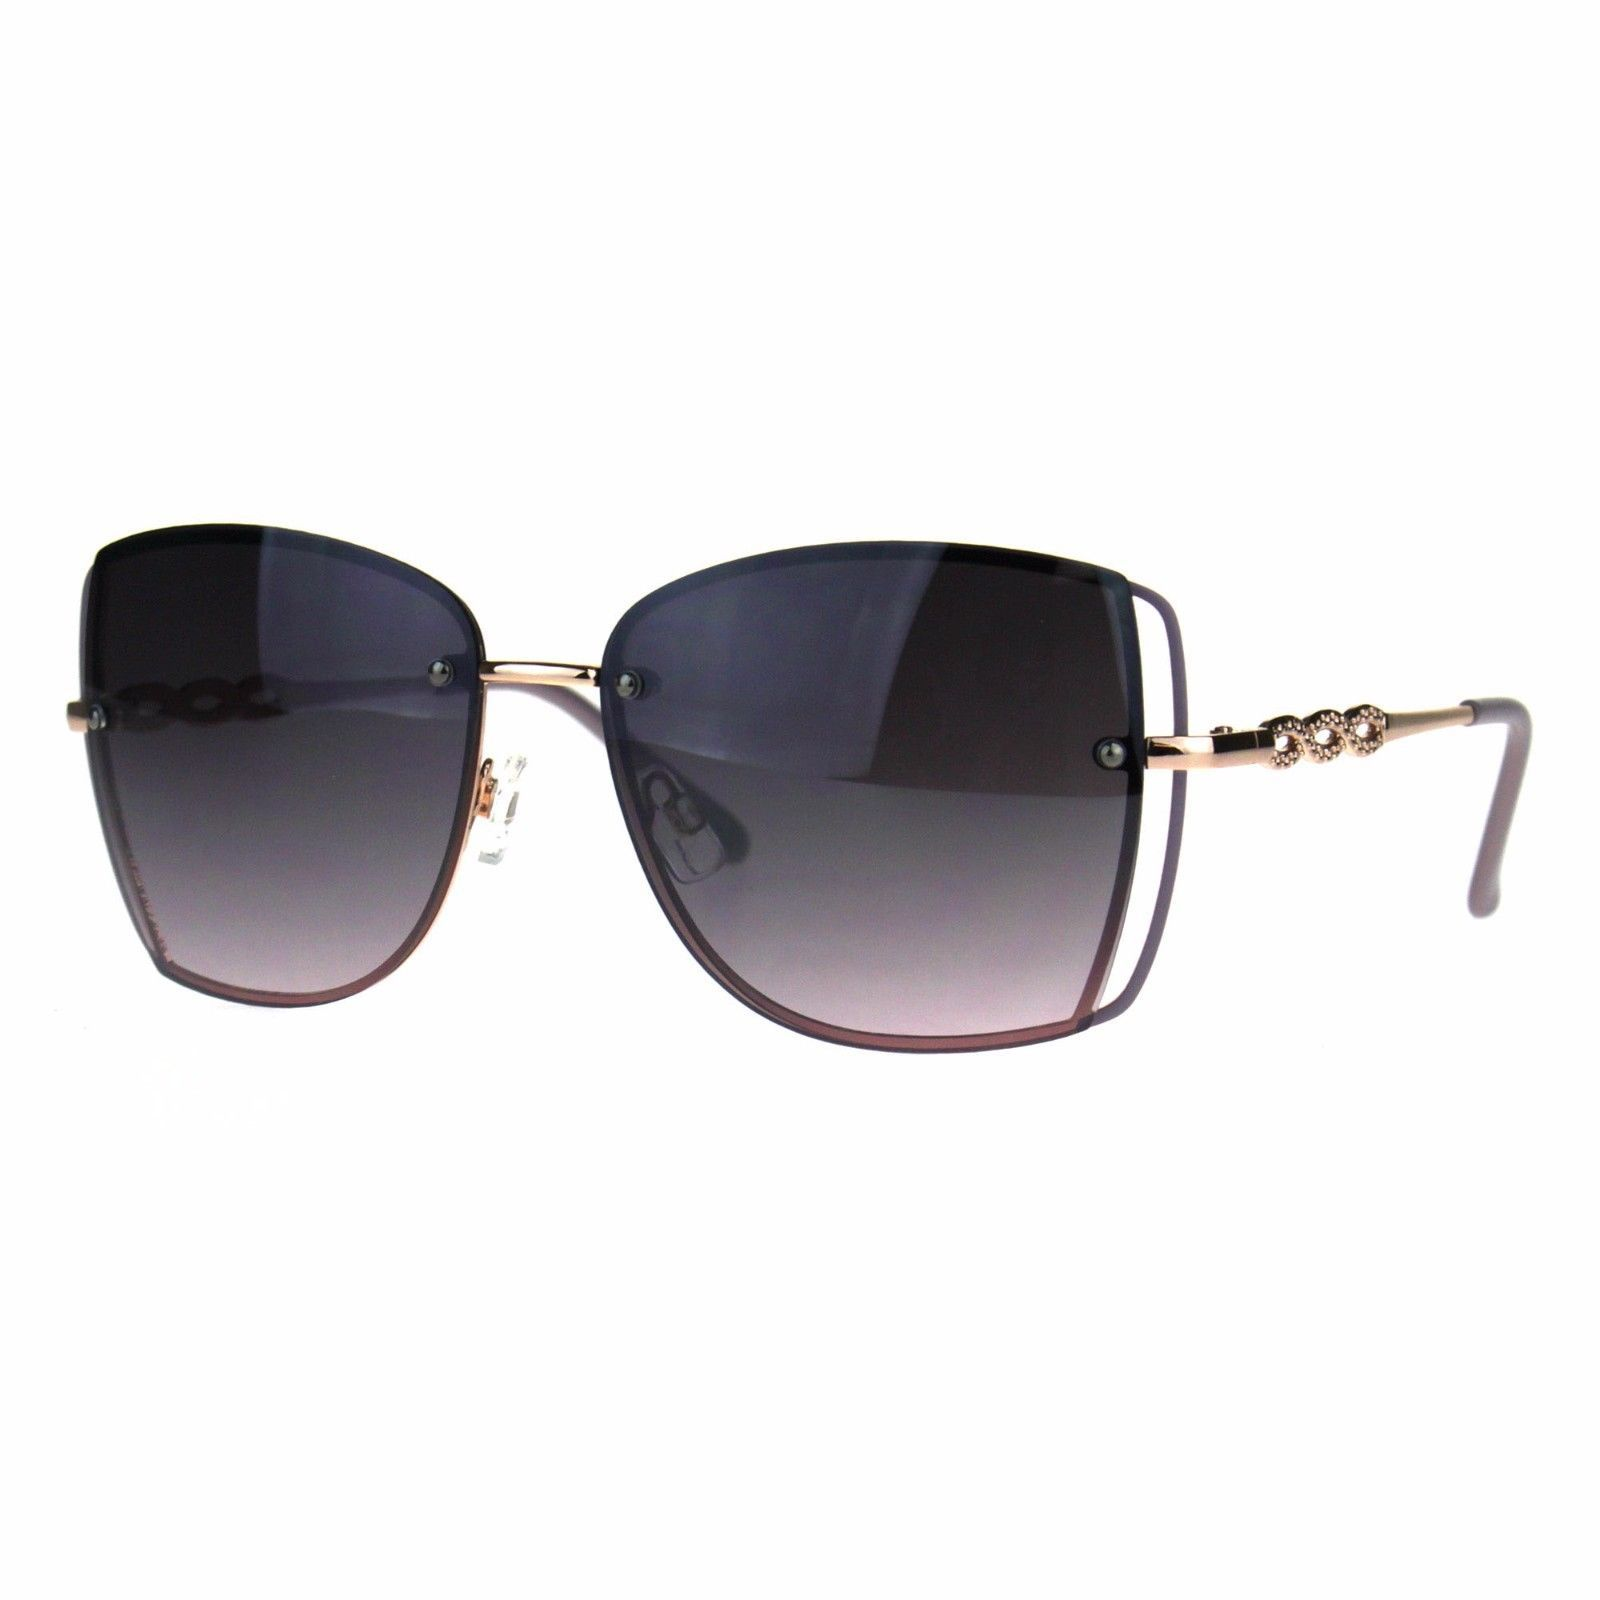 Womens Fashion Sunglasses Square Rims Behind Lens Frame UV 400